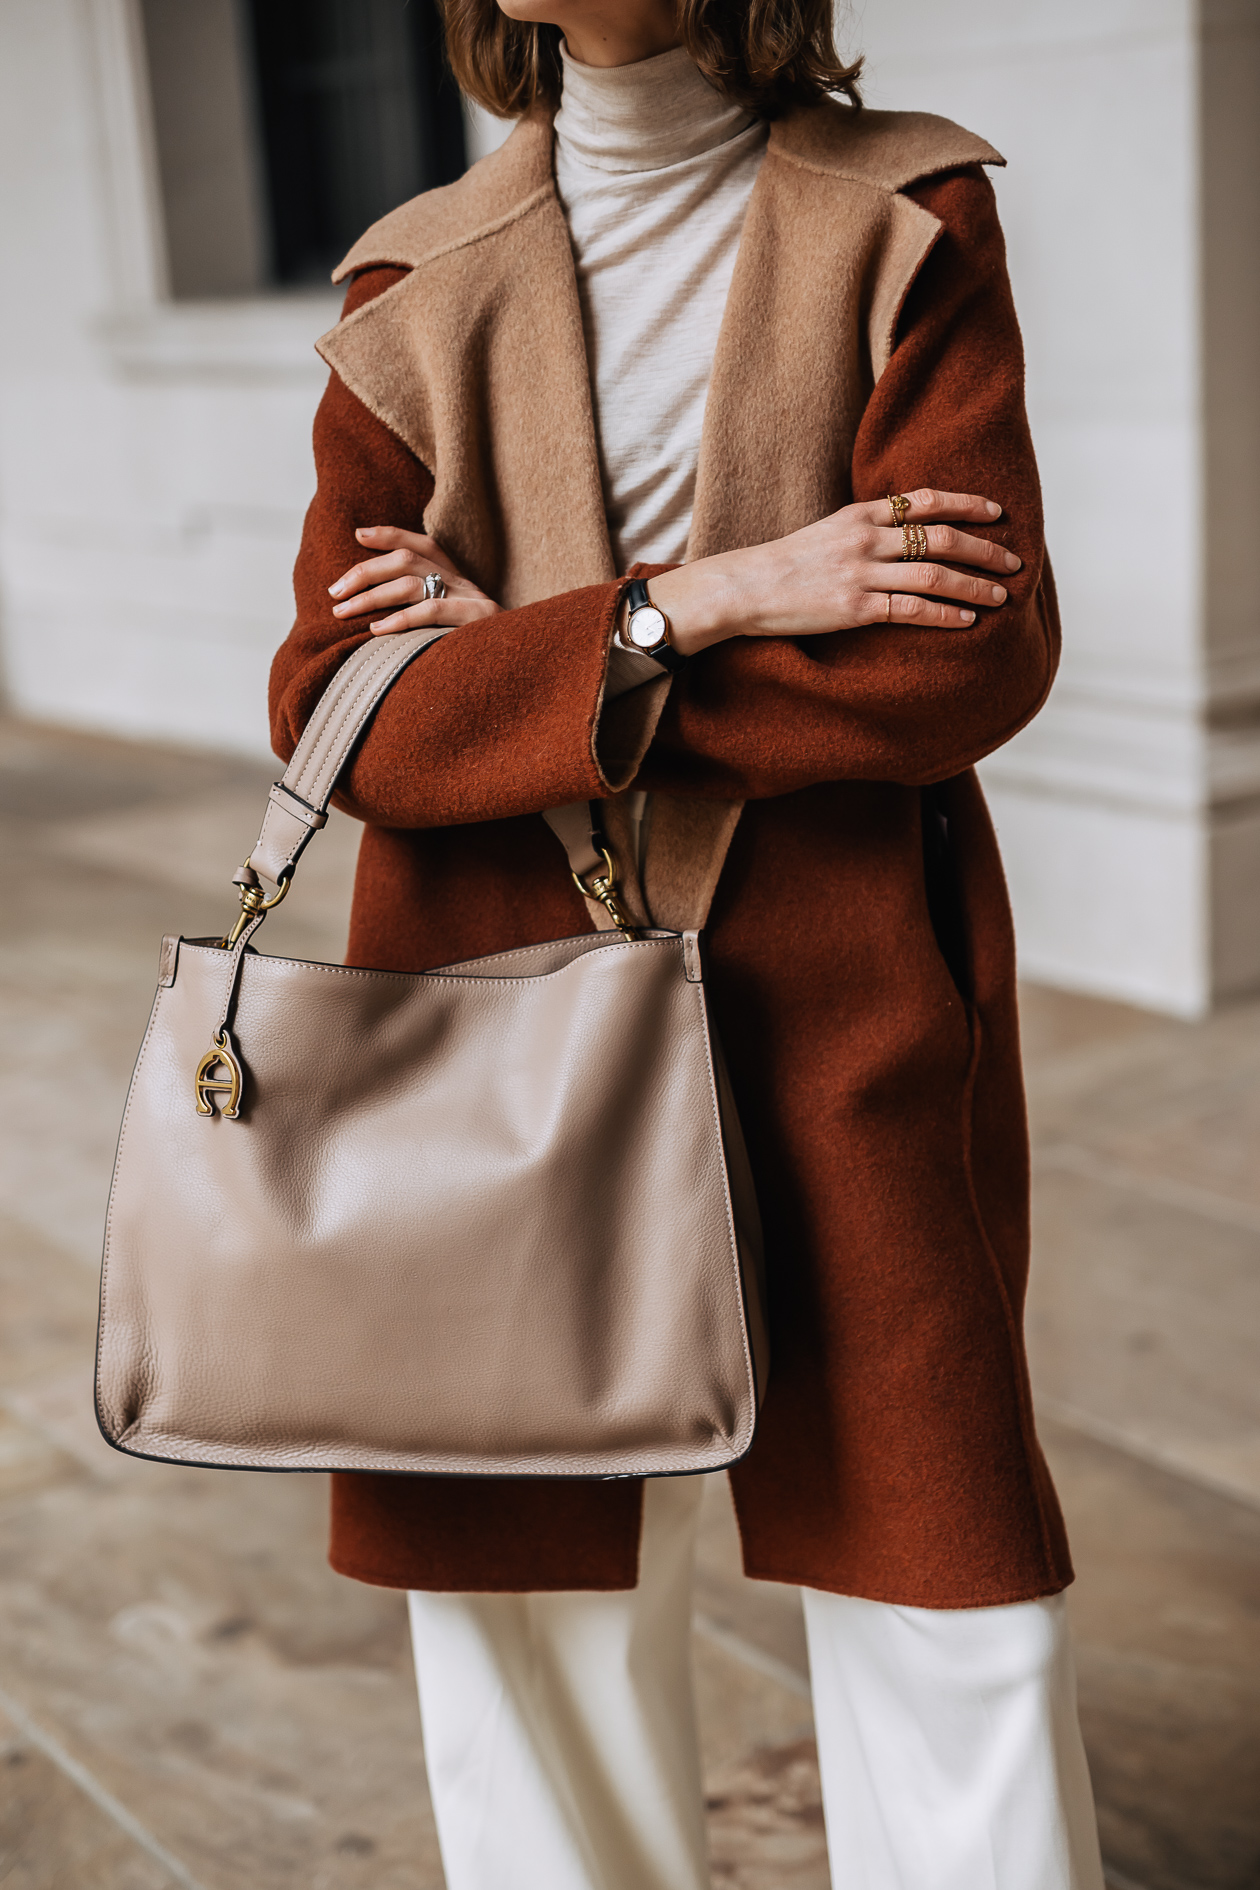 oversized bags are back in 2021